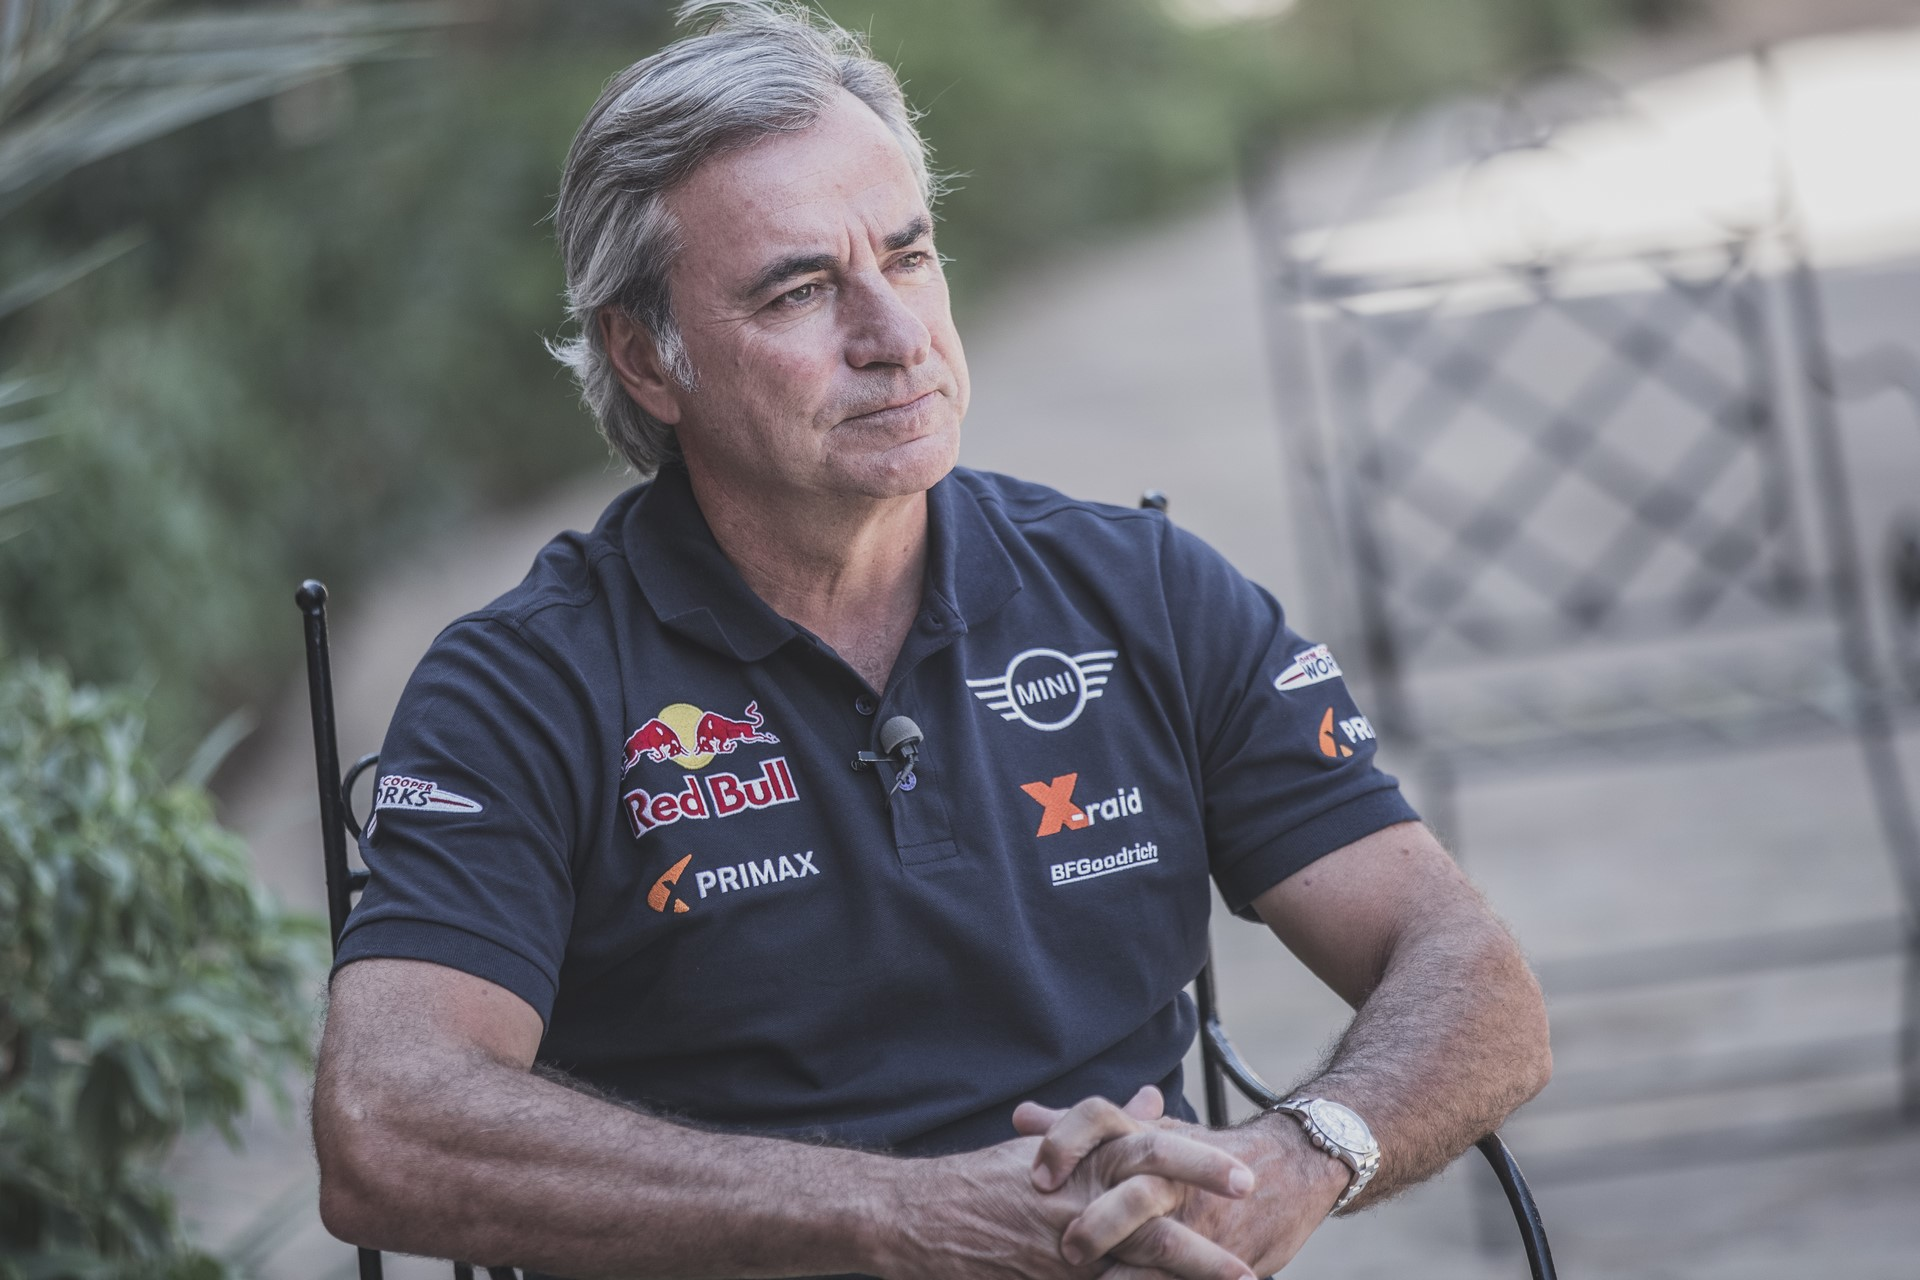 Carlos Sainz (ESP) gives an interview in Erfoud , Morocco on September 24, 2018